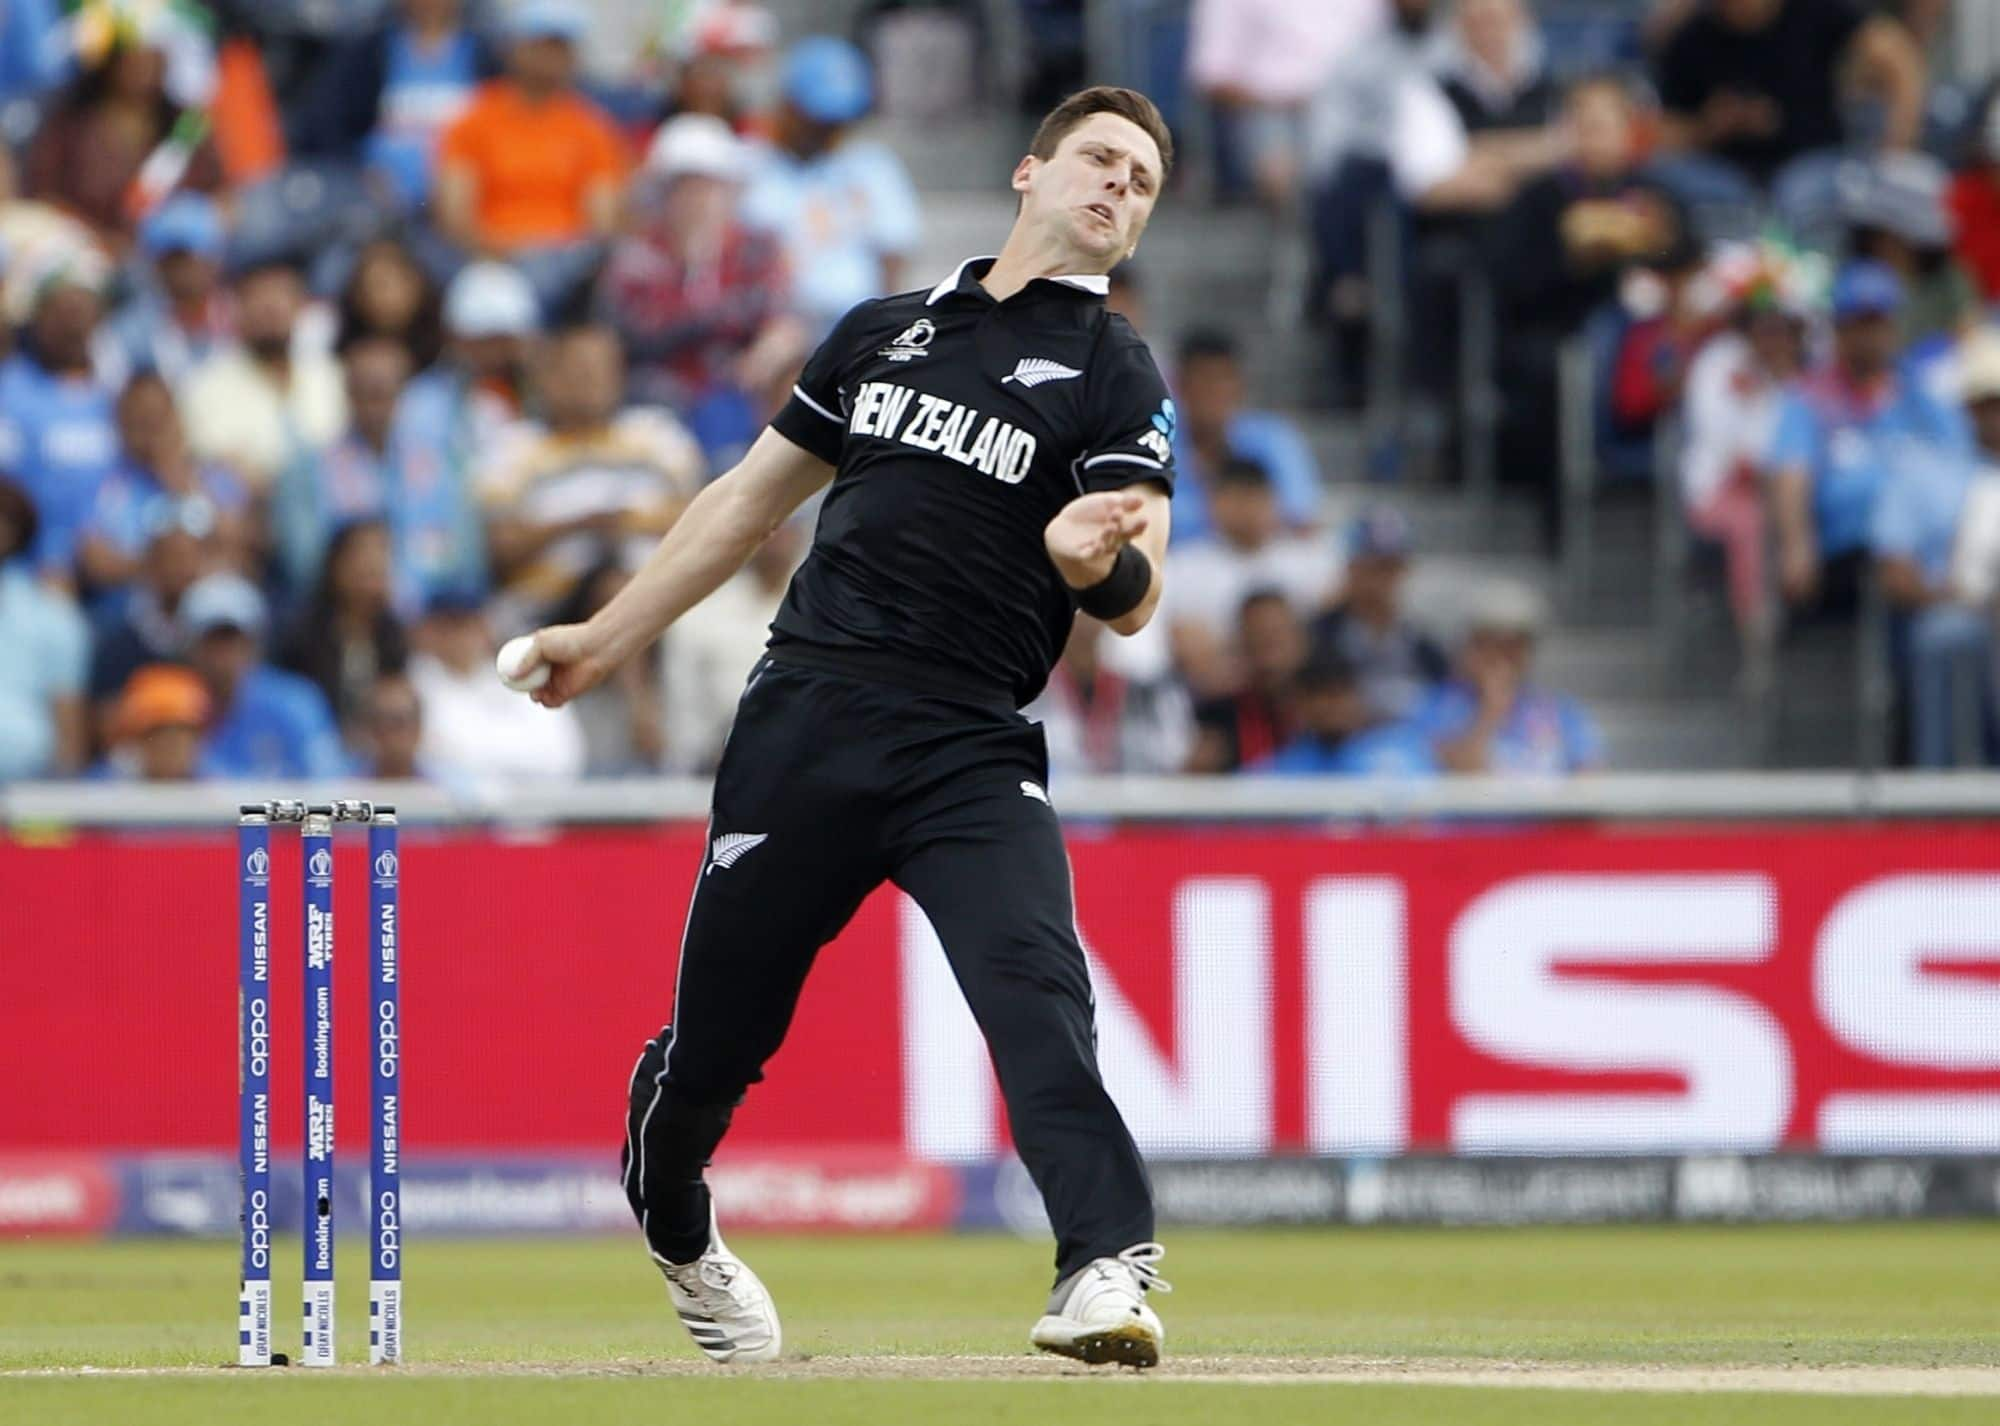 New zealand pacer Matt Henry's contract with Kent Cricket ends by mutual agreement